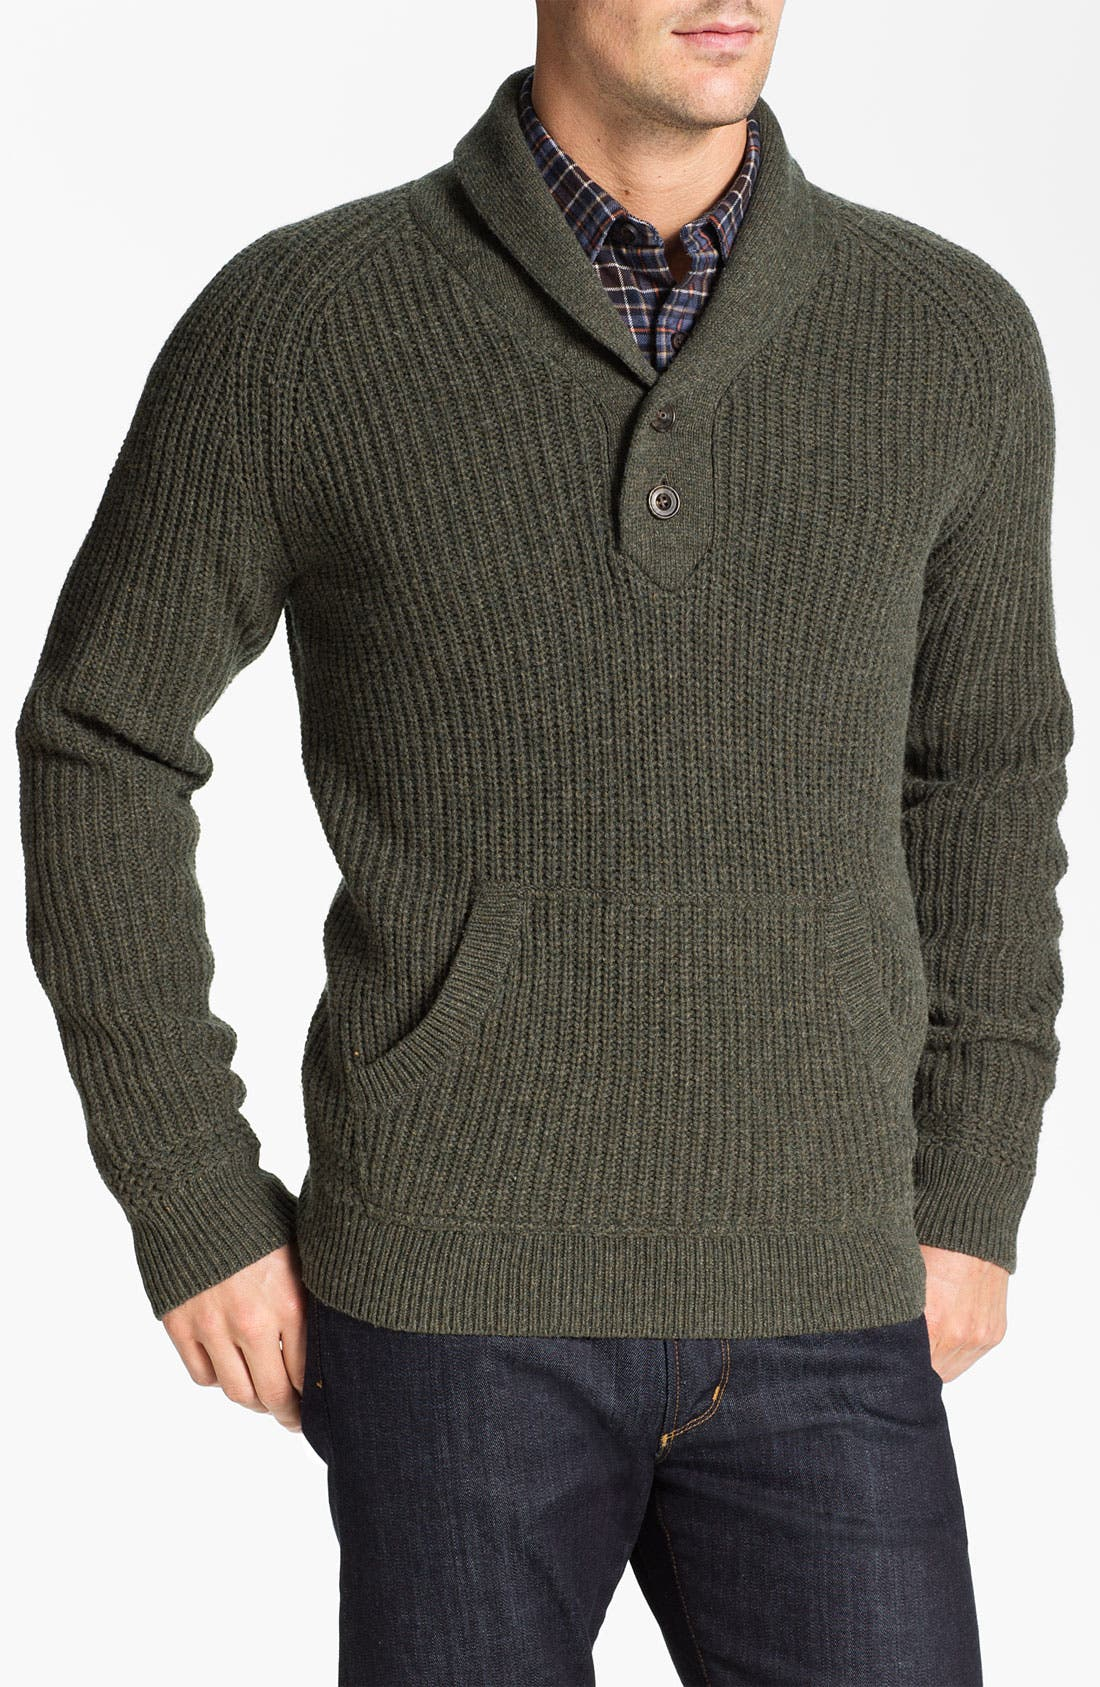 Alternate Image 1 Selected - Wallin & Bros. Shawl Collar Merino Wool Blend Sweater